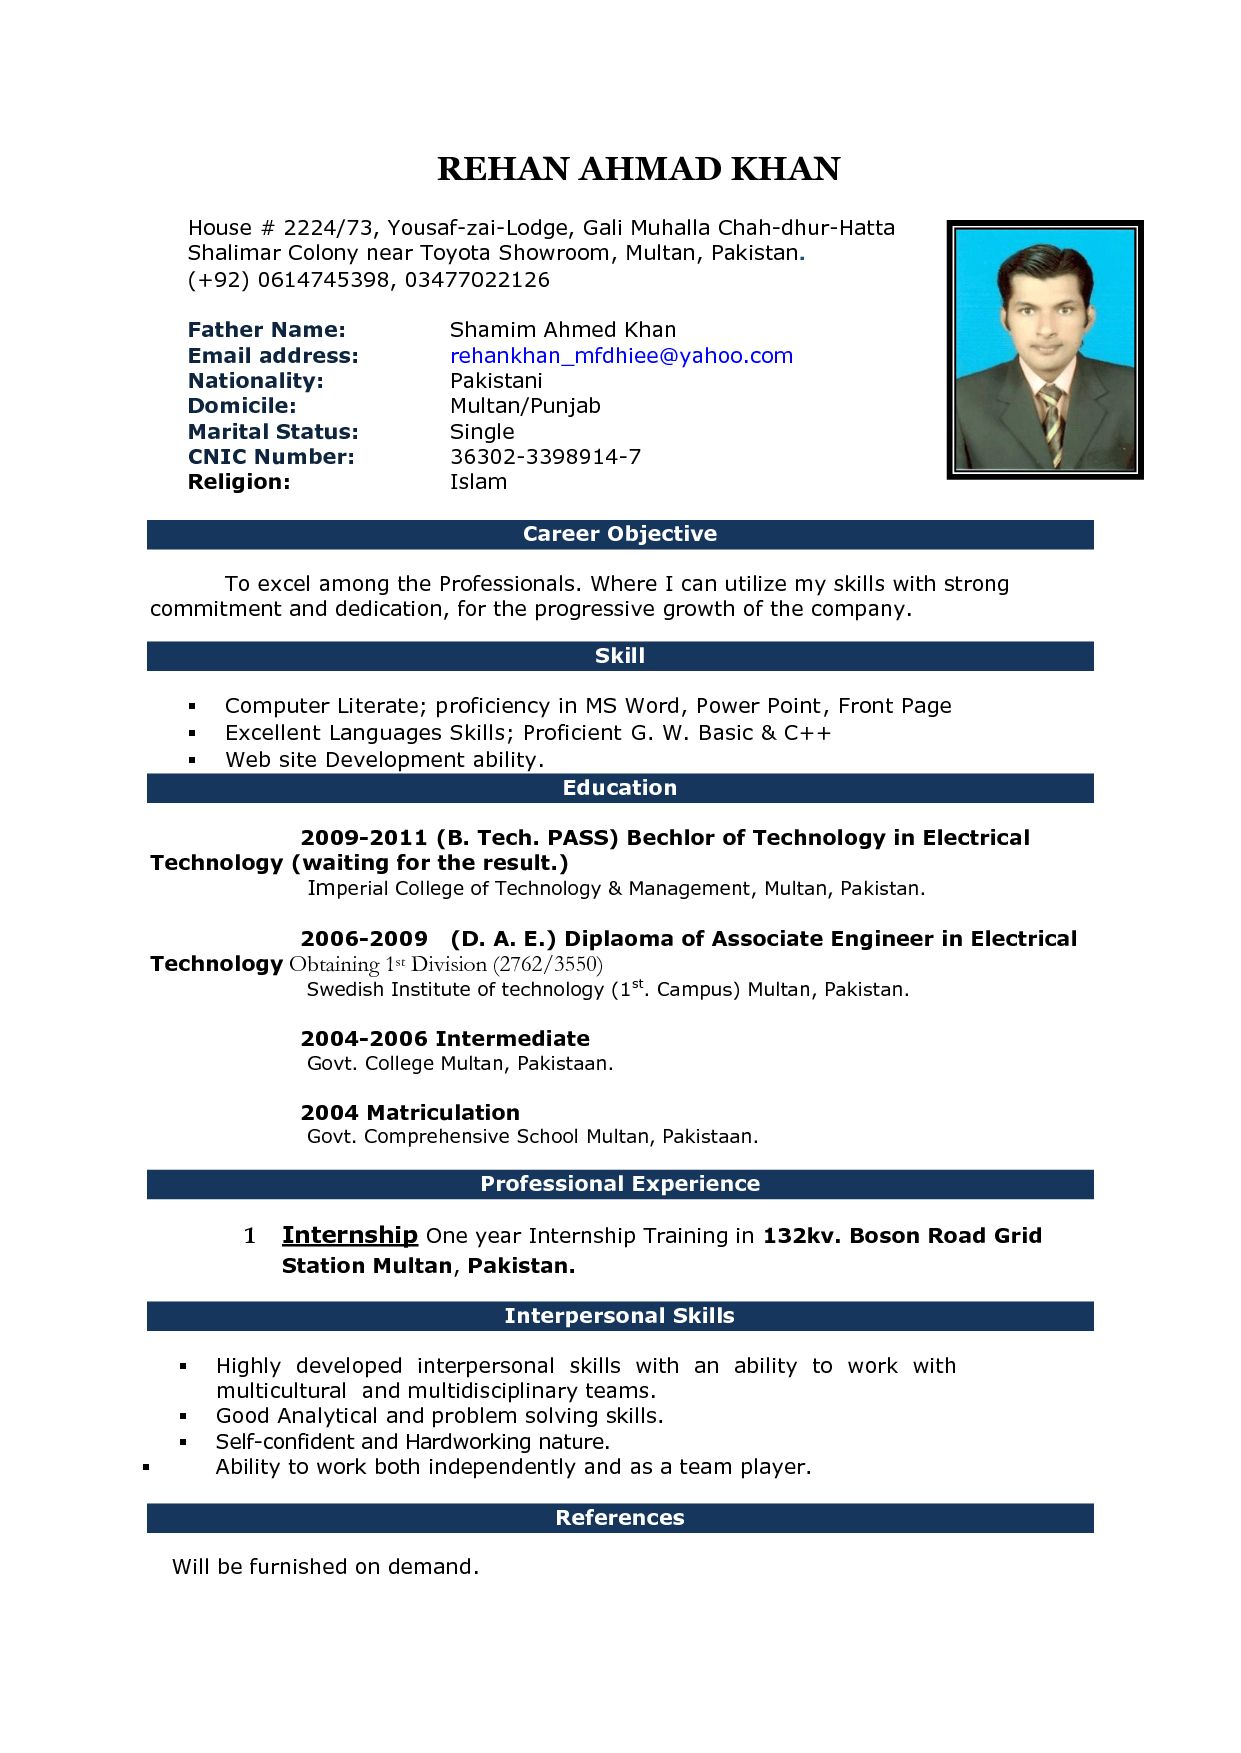 downloadable microsoft office resume templates